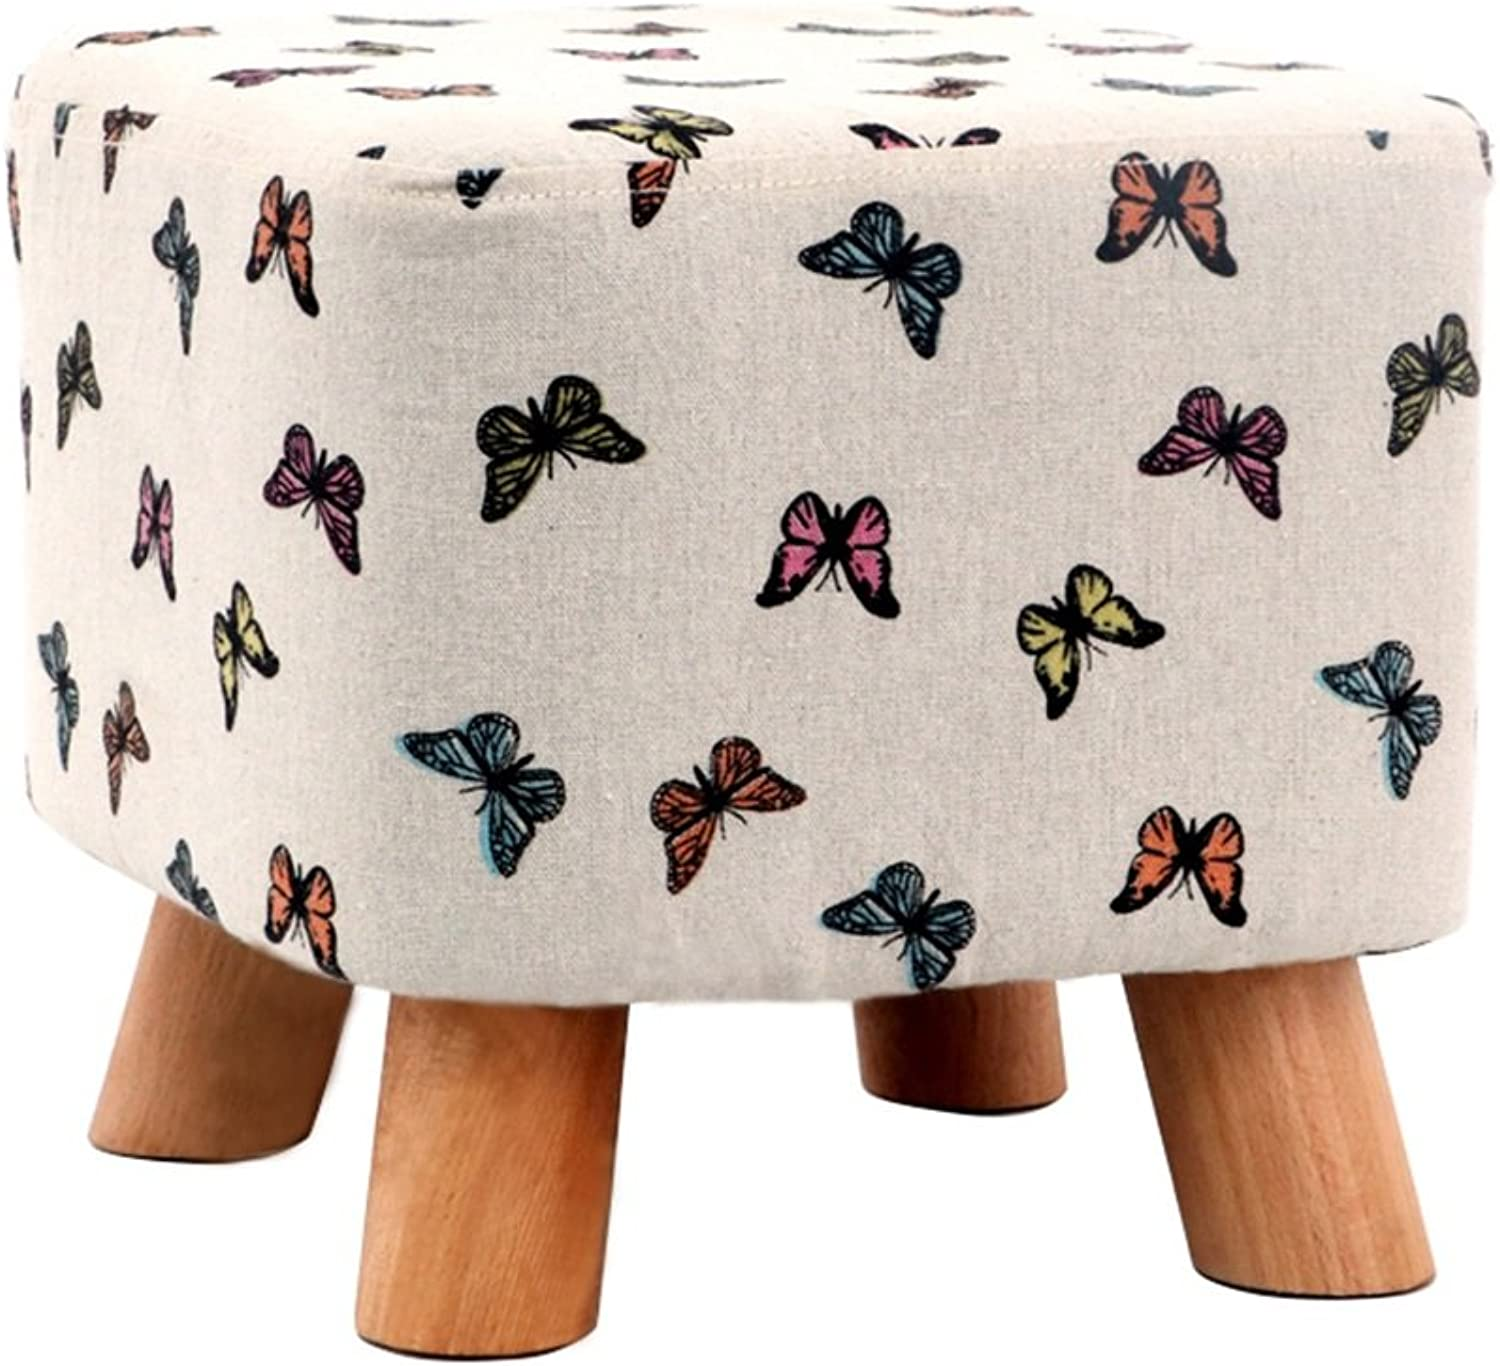 Fabric Sofa Stool Four-Stool Stool Bed Stool Multifunctional Footstool Solid Wood Home Stool Fashion Square Stool shoes Bench Creative shoes Bench Bench  28  28  26cm